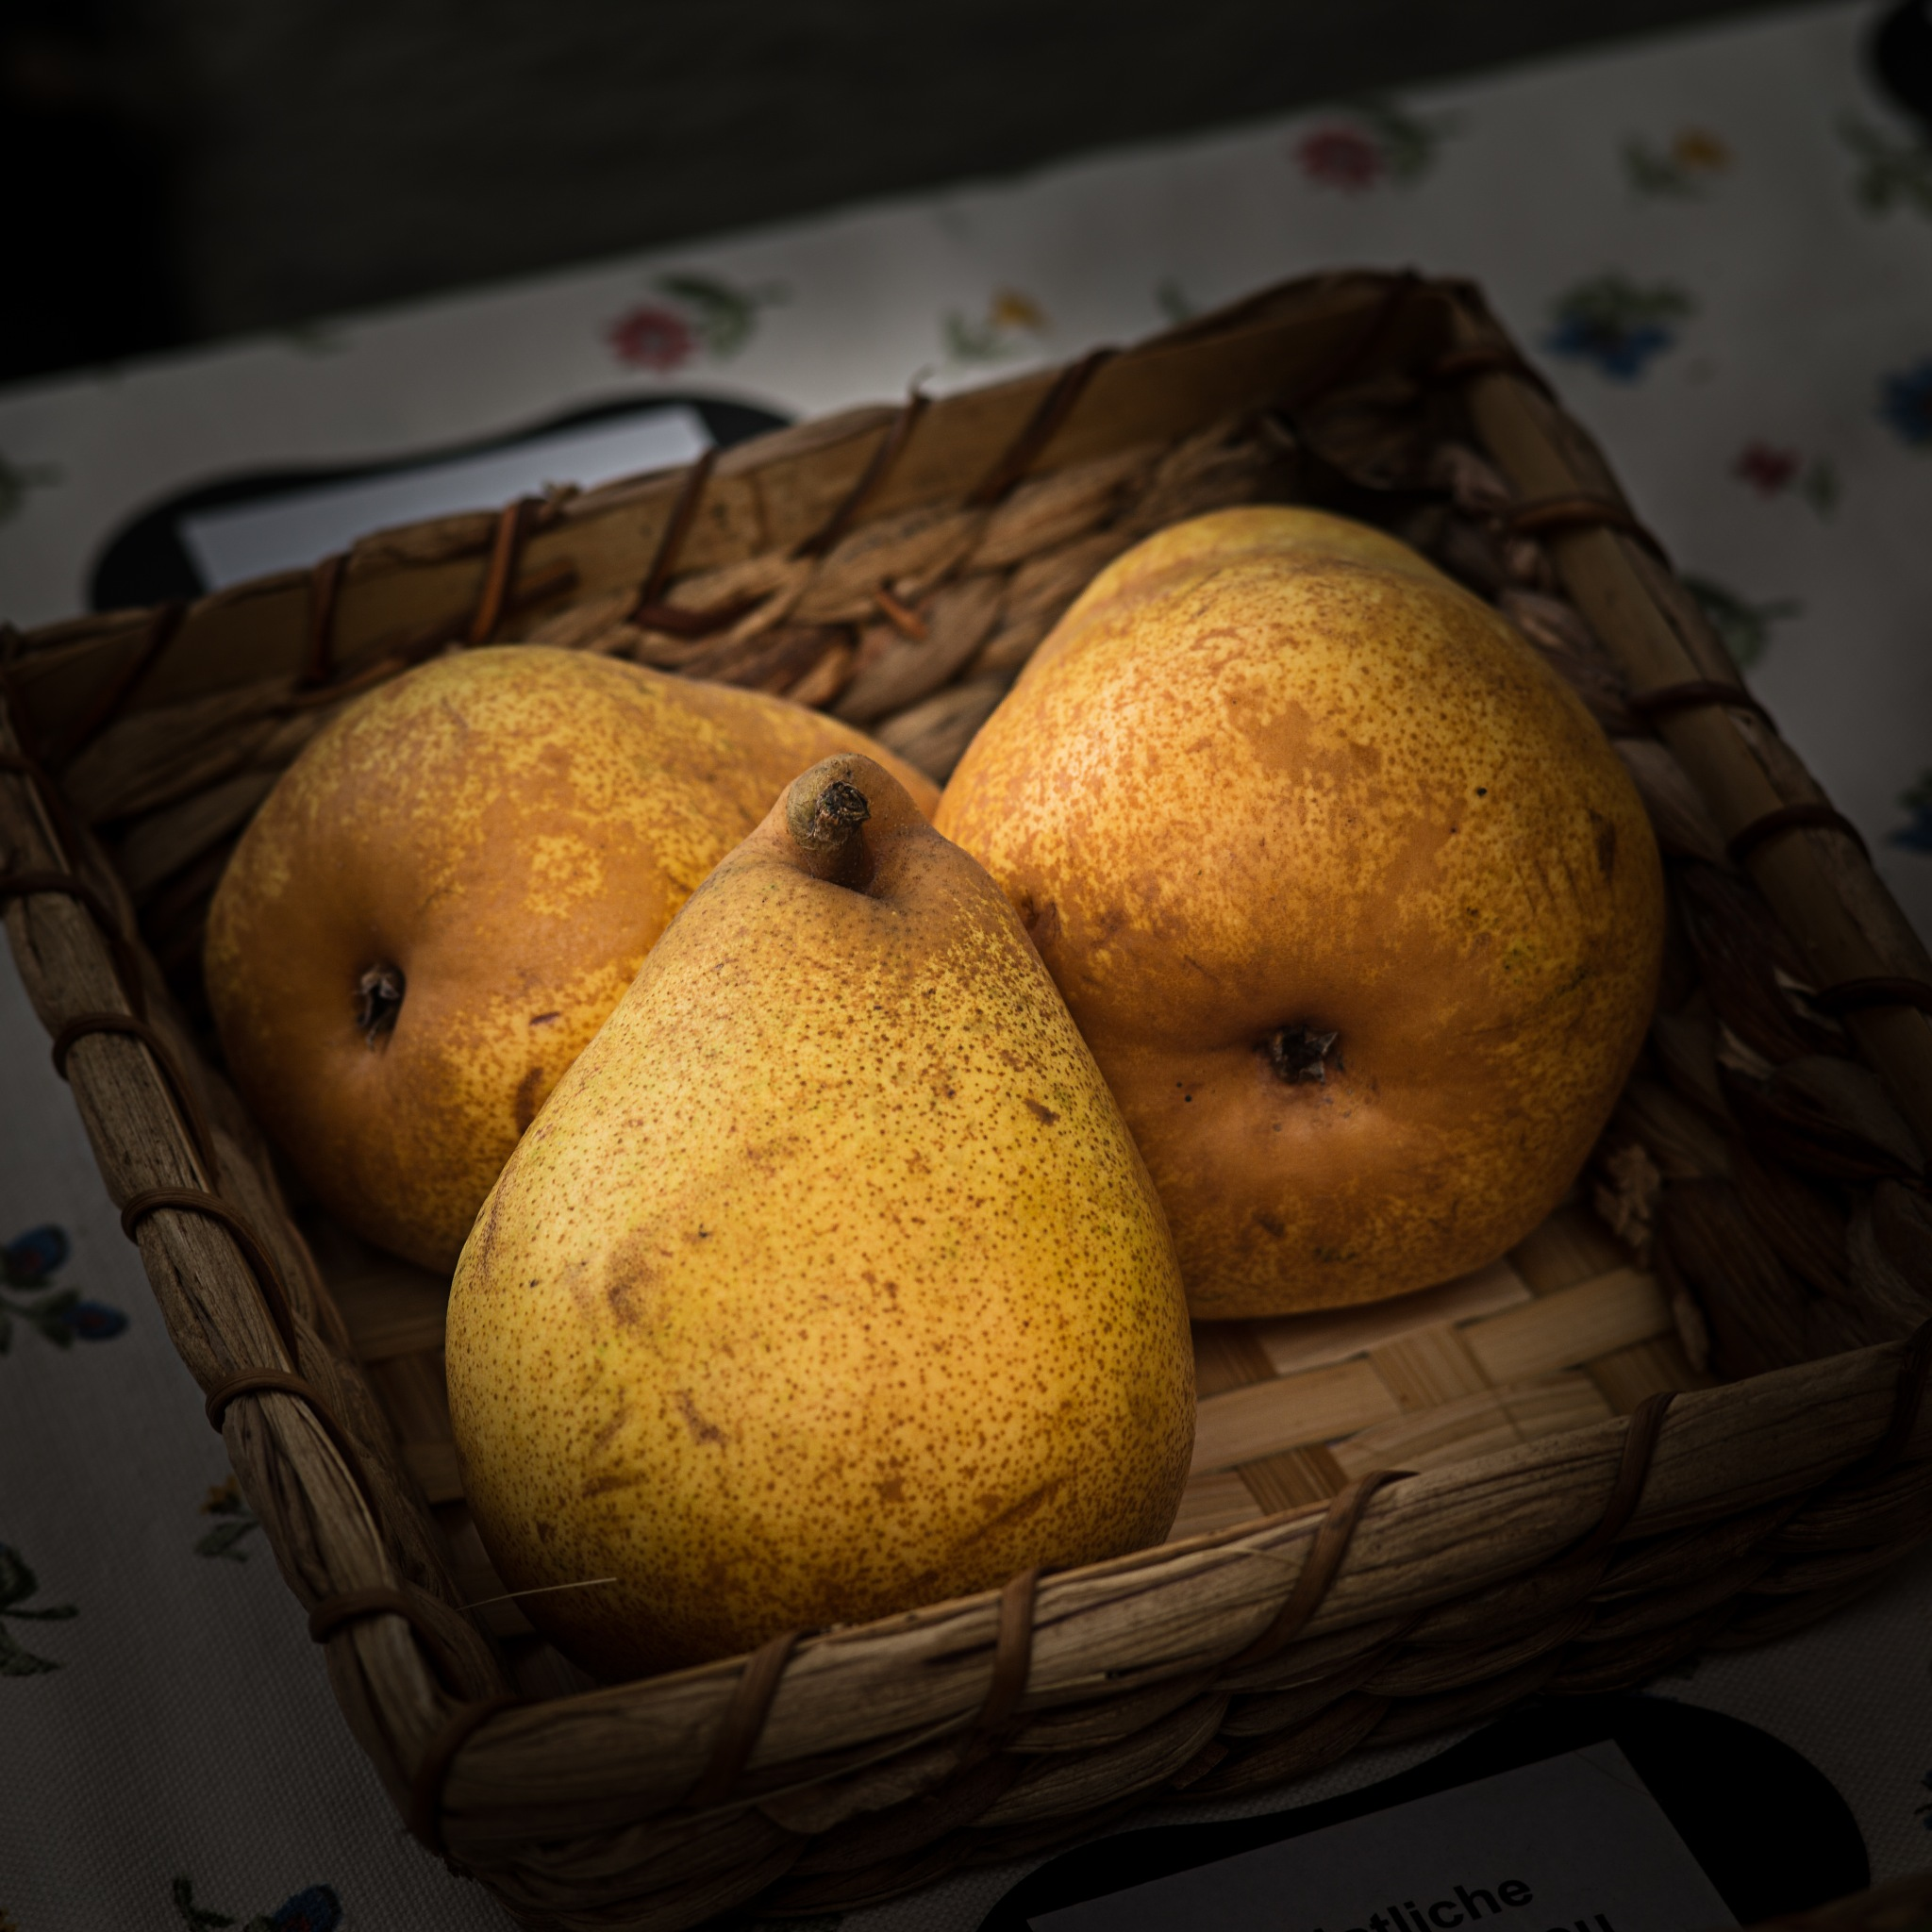 pears by Ulrich Gerndt